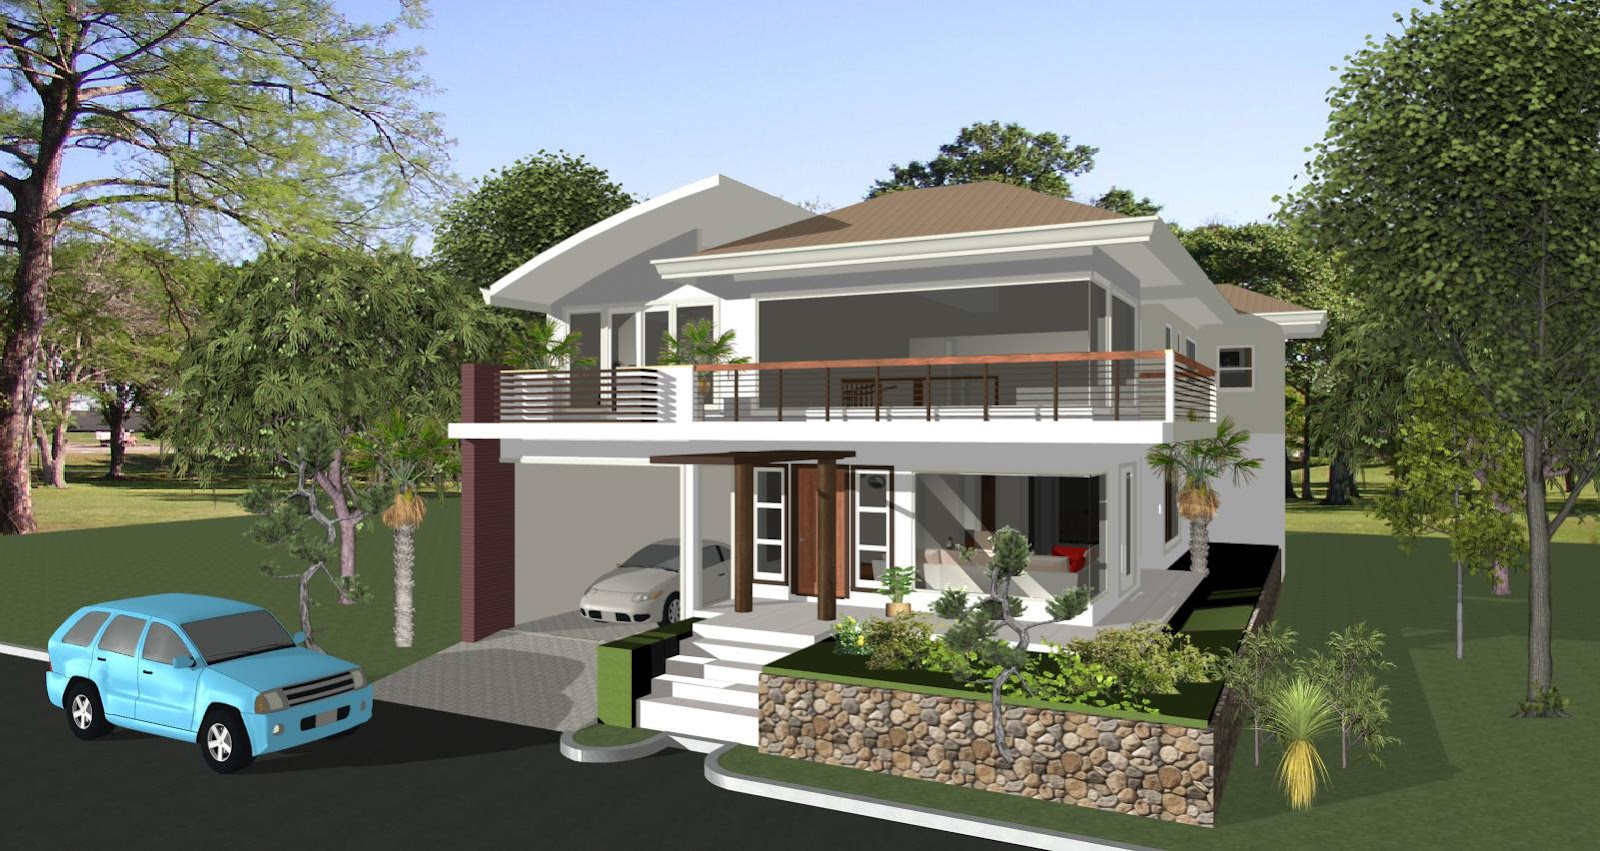 House designs philippines architect bill house plans for Homes models and plans